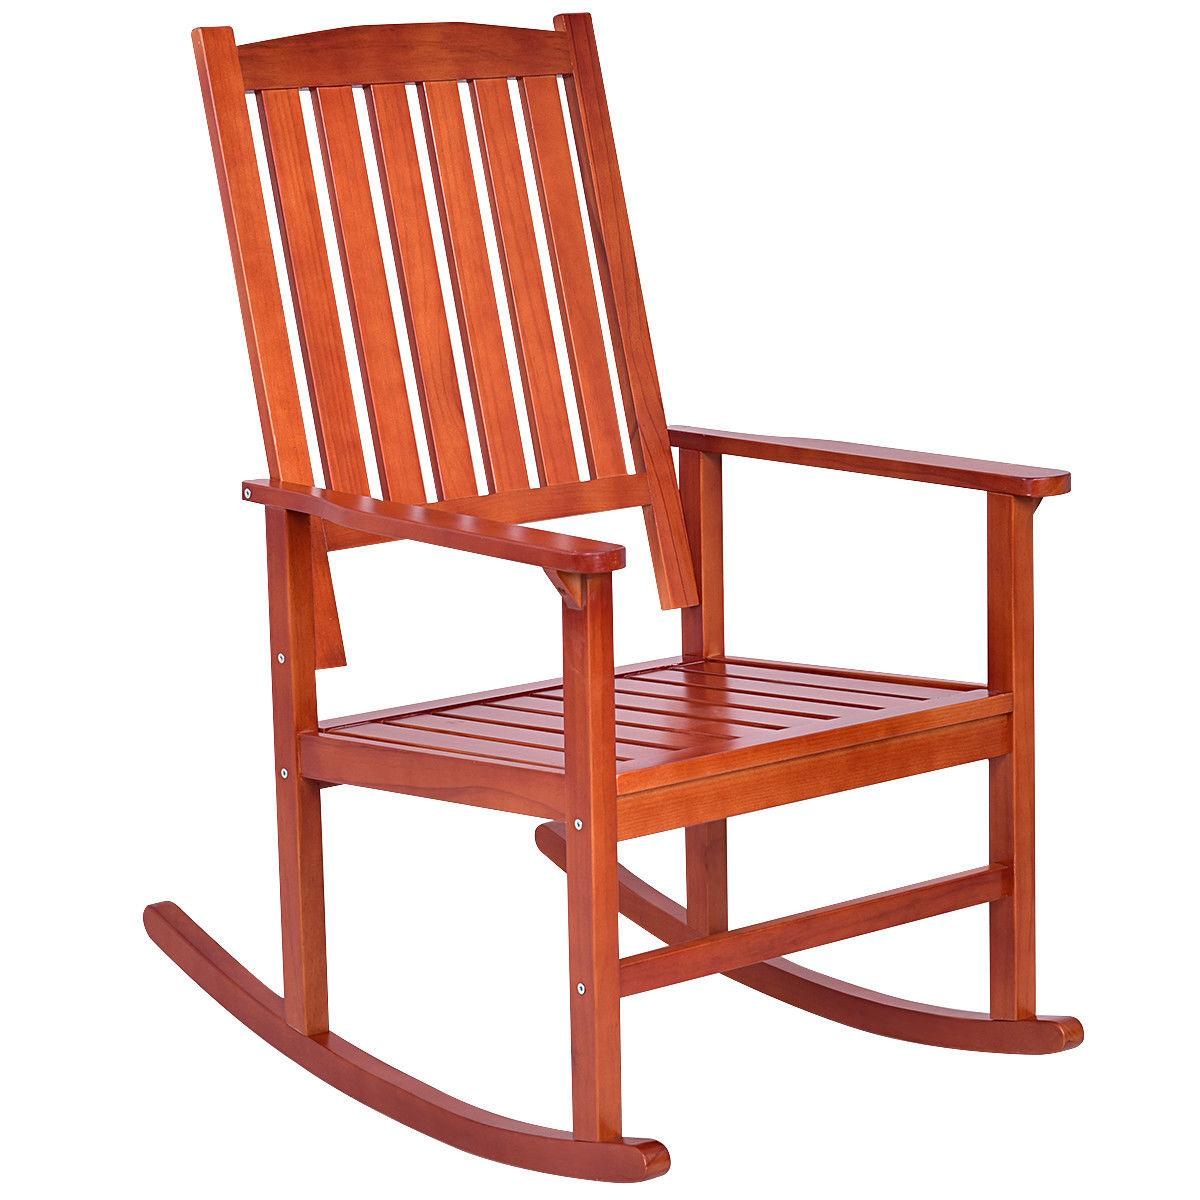 Set of 2 Rocking Chair Porch Indoor Outdoor Furniture